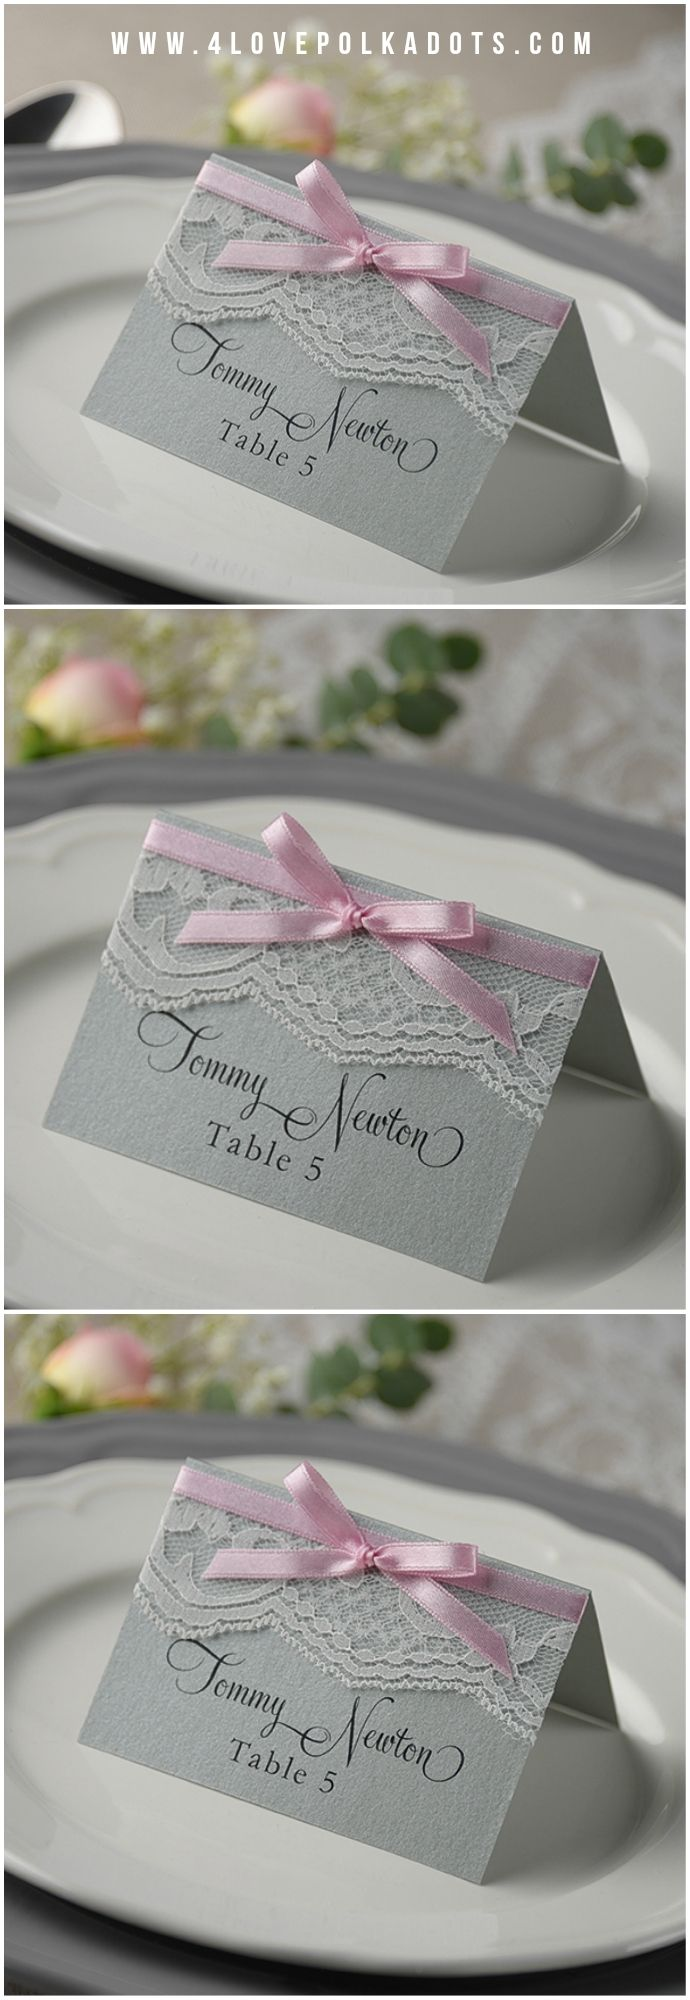 44 Best Place Cards Images On Pinterest Place Cards Coastal And